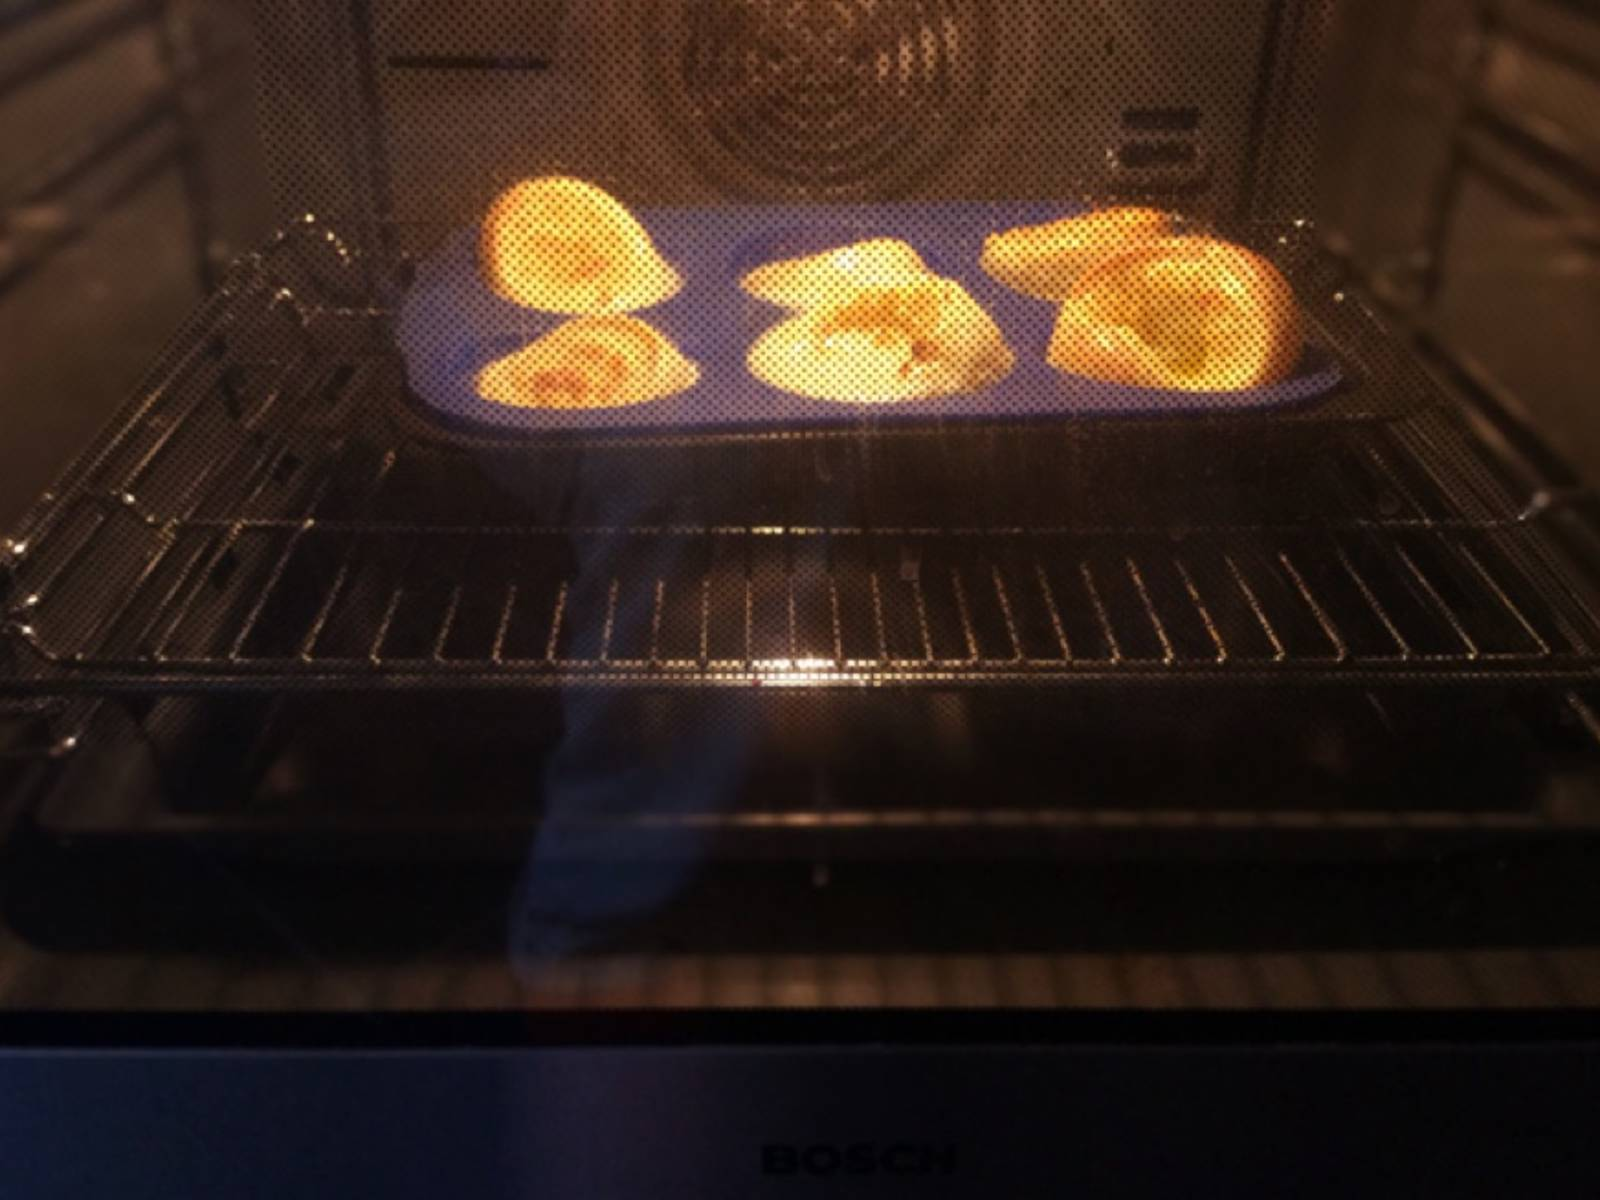 Bake for approx. 15 – 20 min. at 220°C/430°F, and do not open the oven door, or your puddings may collapse. Bake until crisp and golden, and serve immediately.